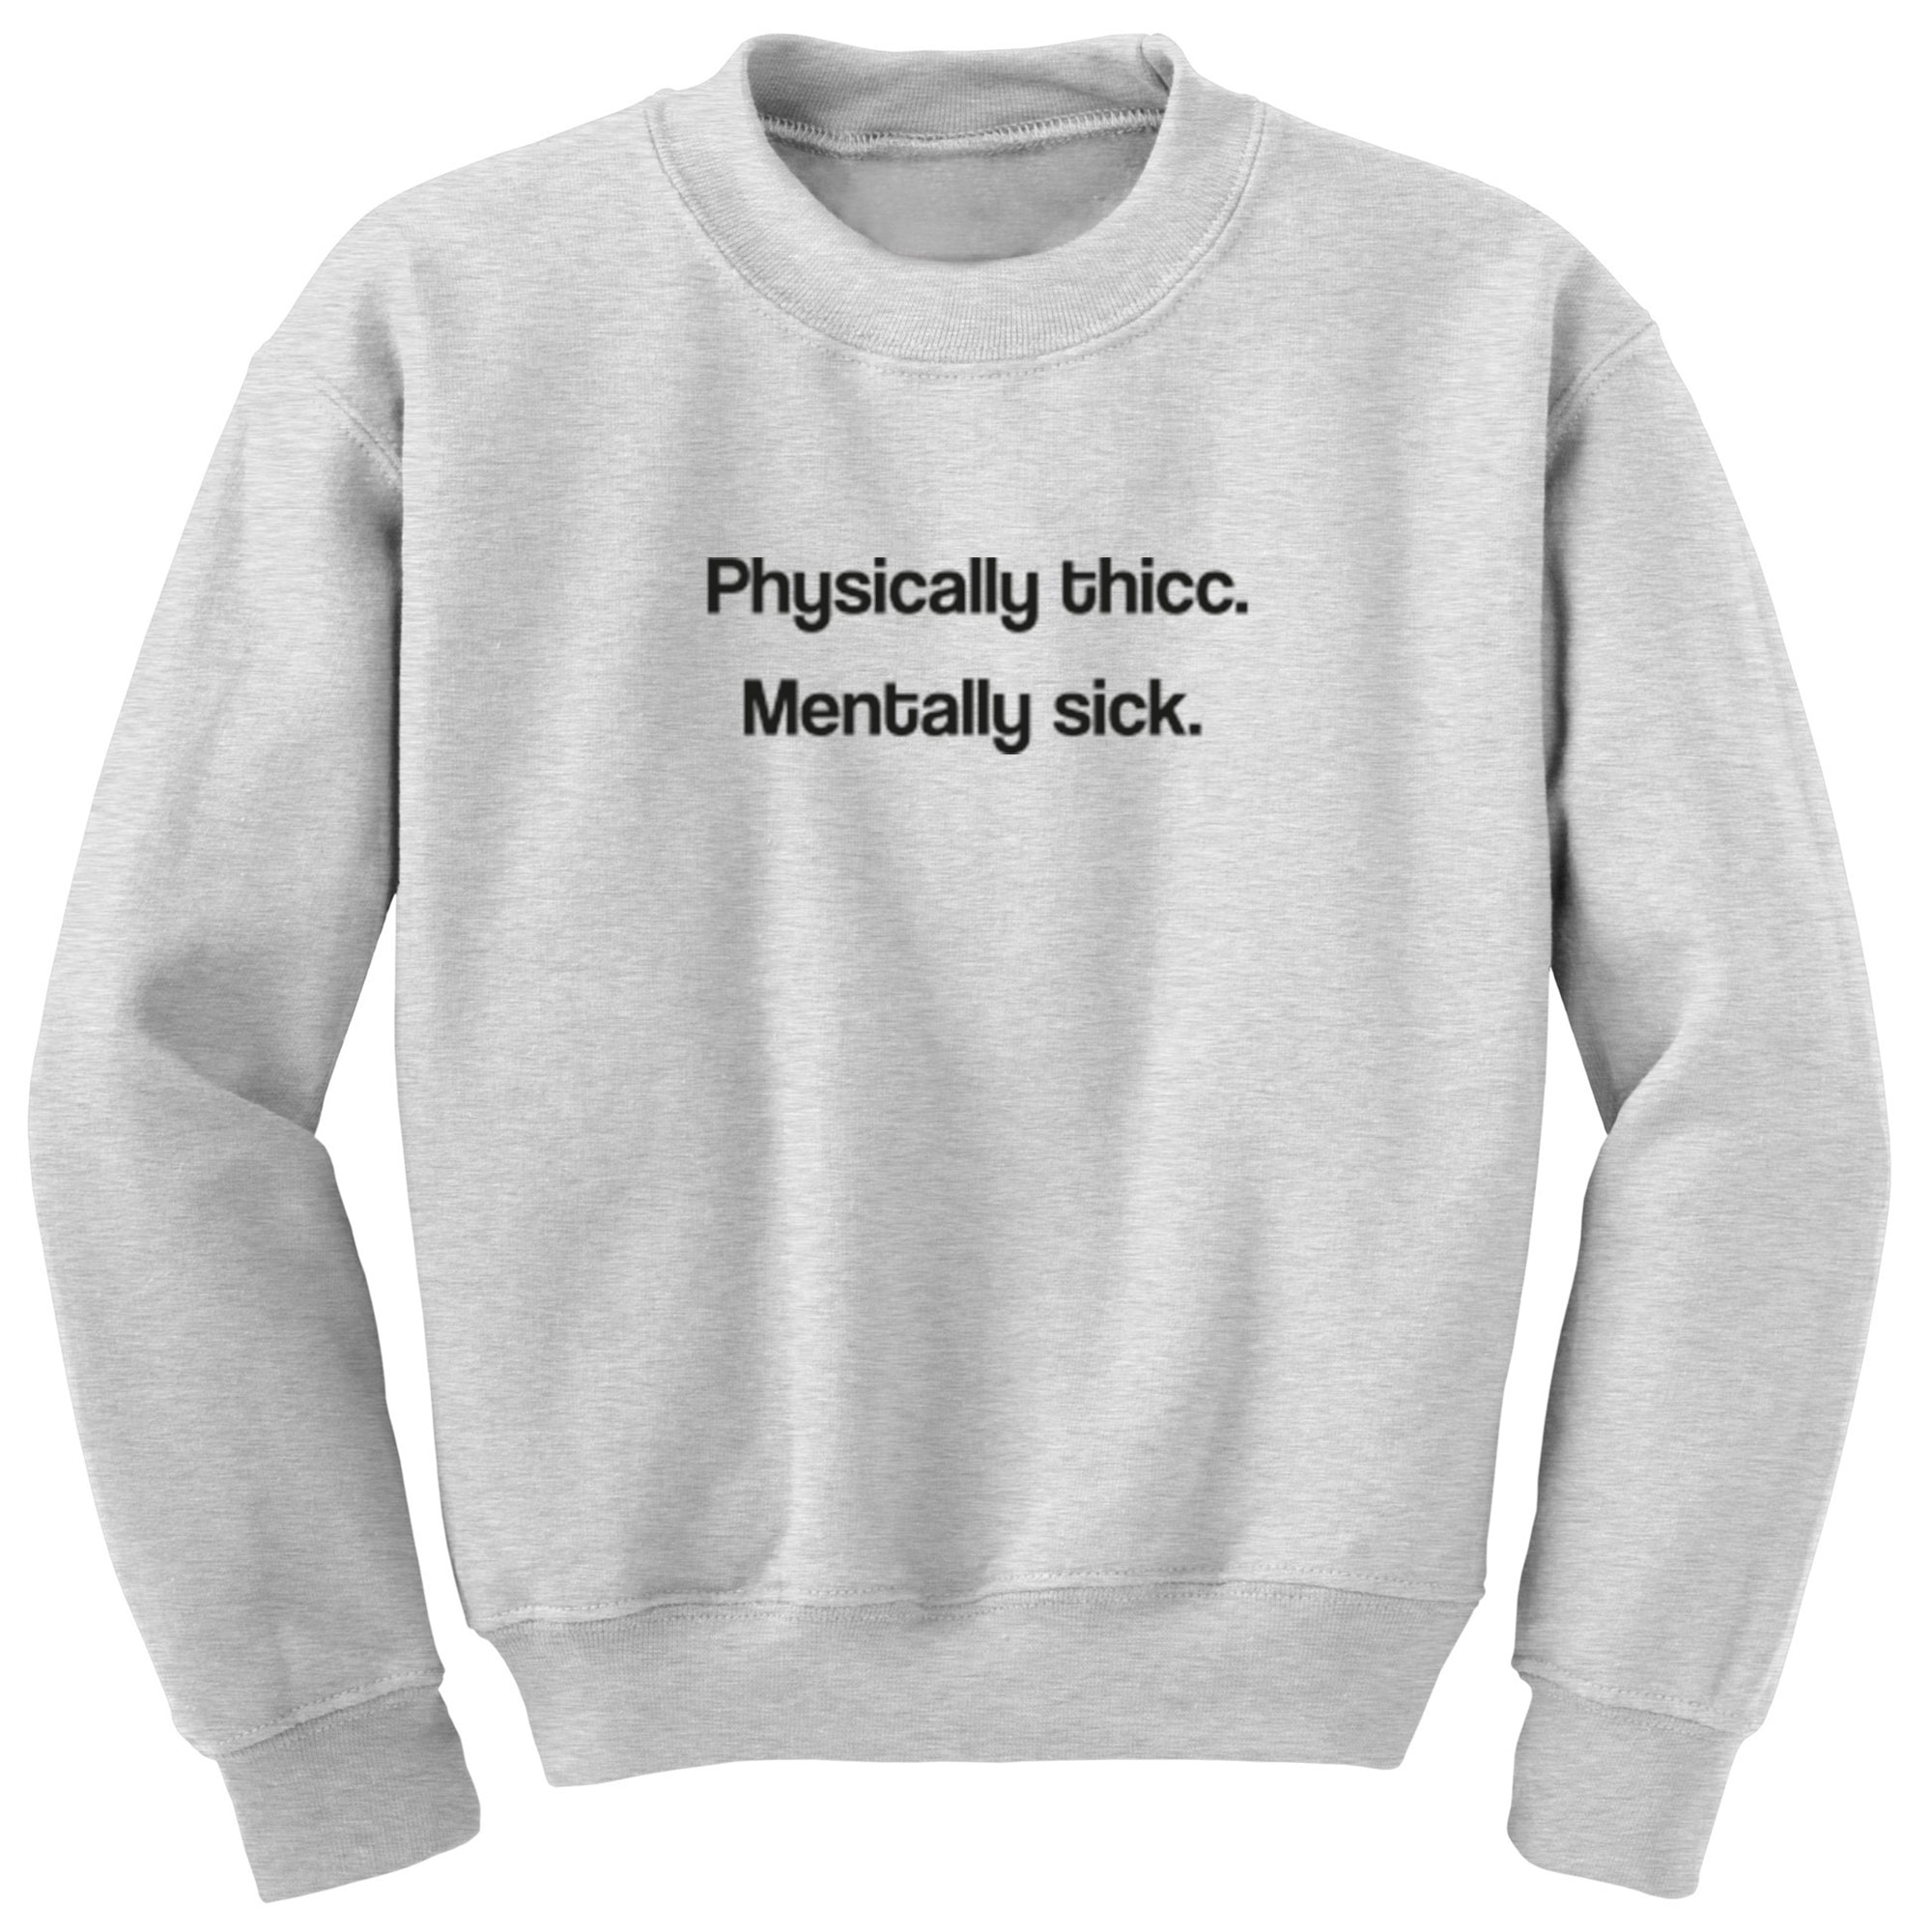 Physically Thicc, Mentally Sick Unisex Jumper S1112 - Illustrated Identity Ltd.